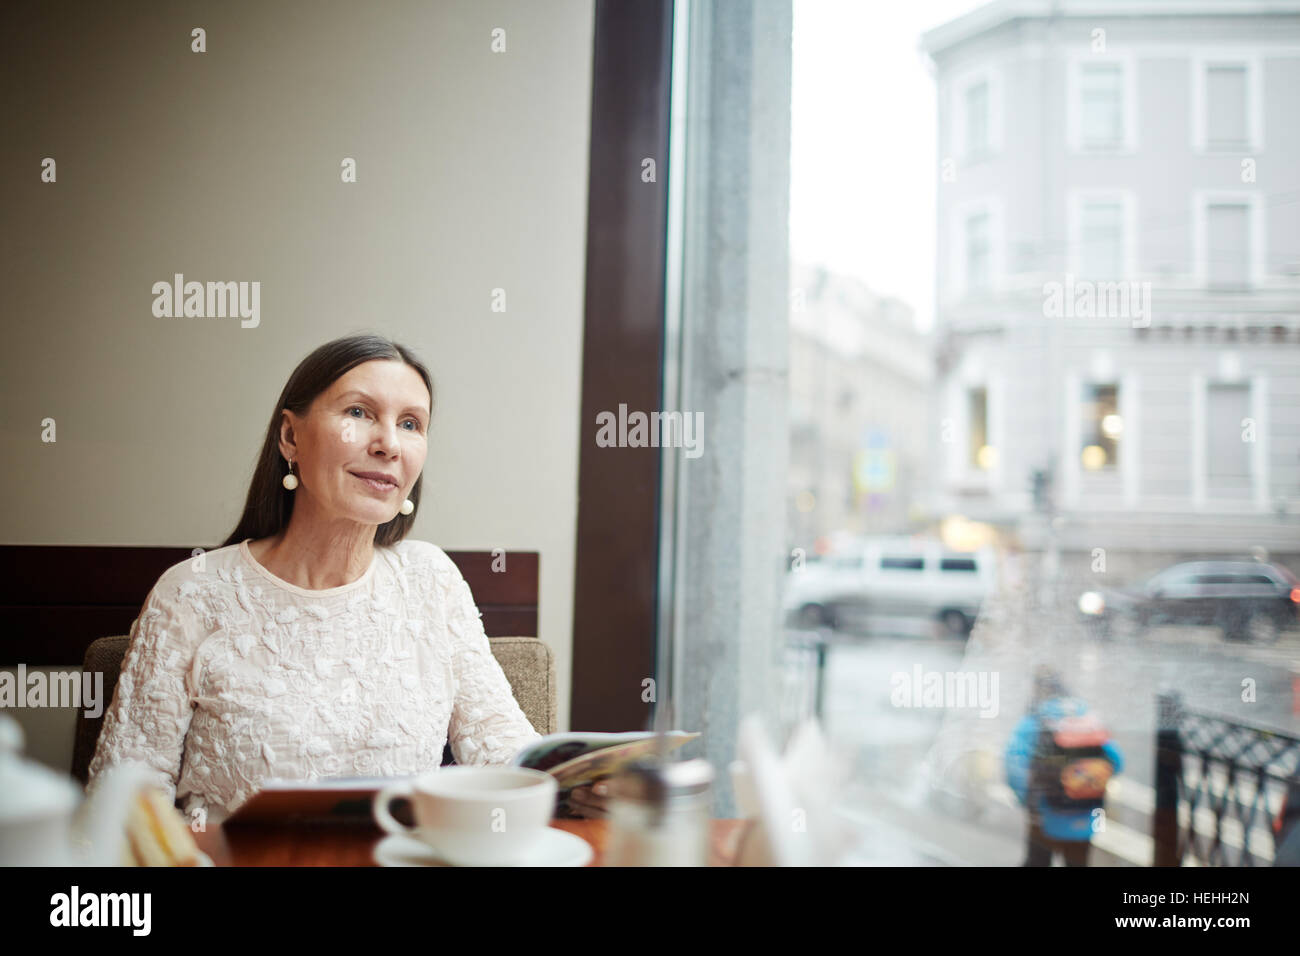 Pretty senior woman relaxing in cafe at lesiure - Stock Image